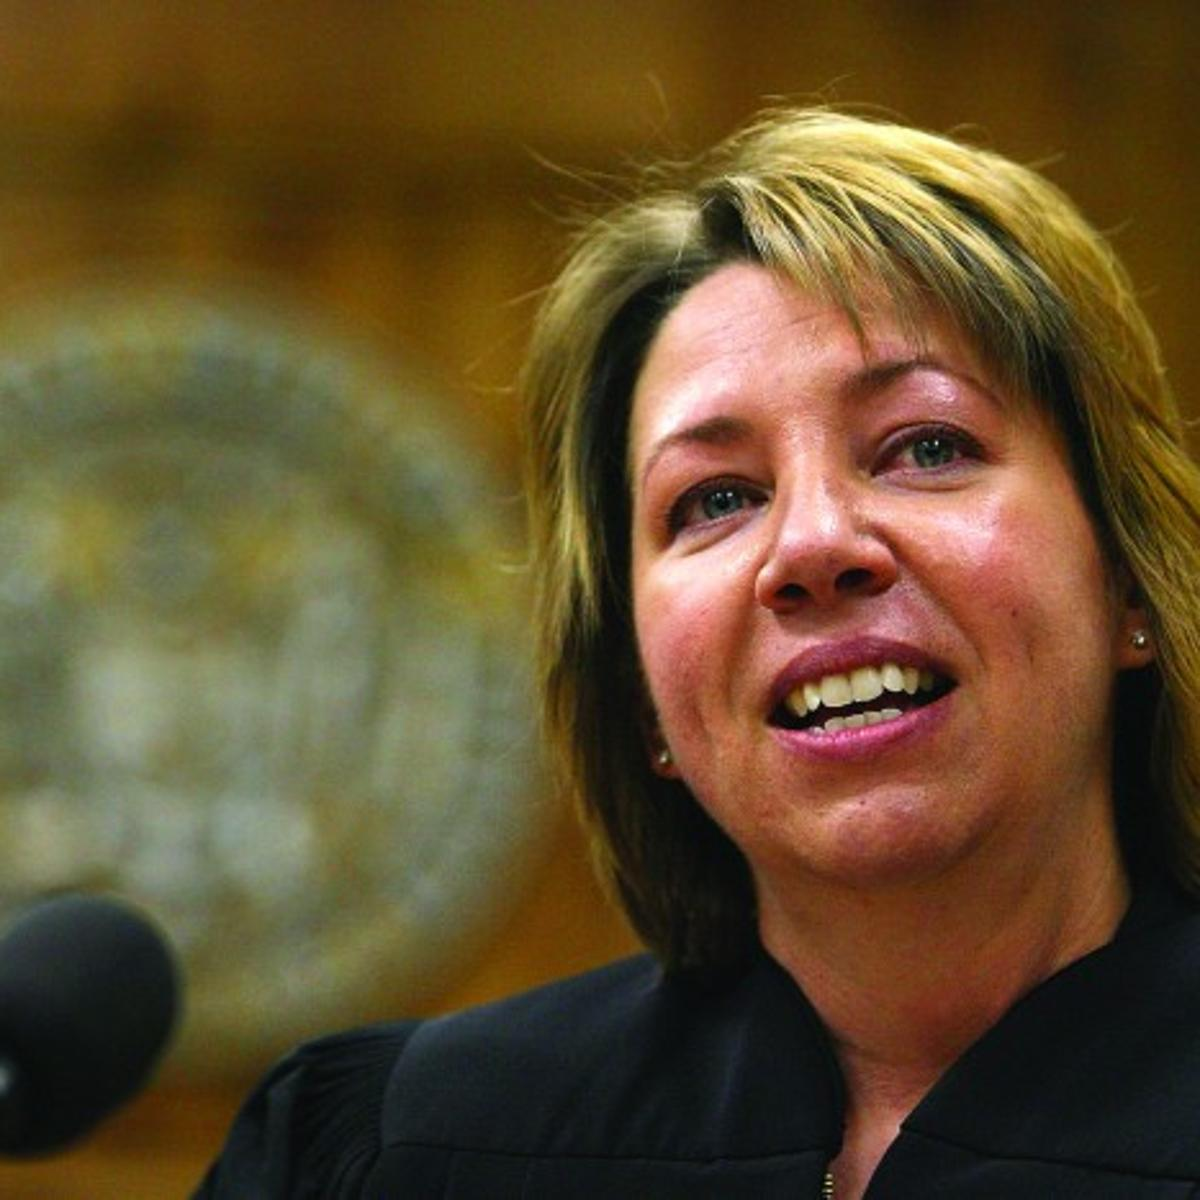 Former Judge Cannon to Plead Guilty, Be Sentenced for DUI